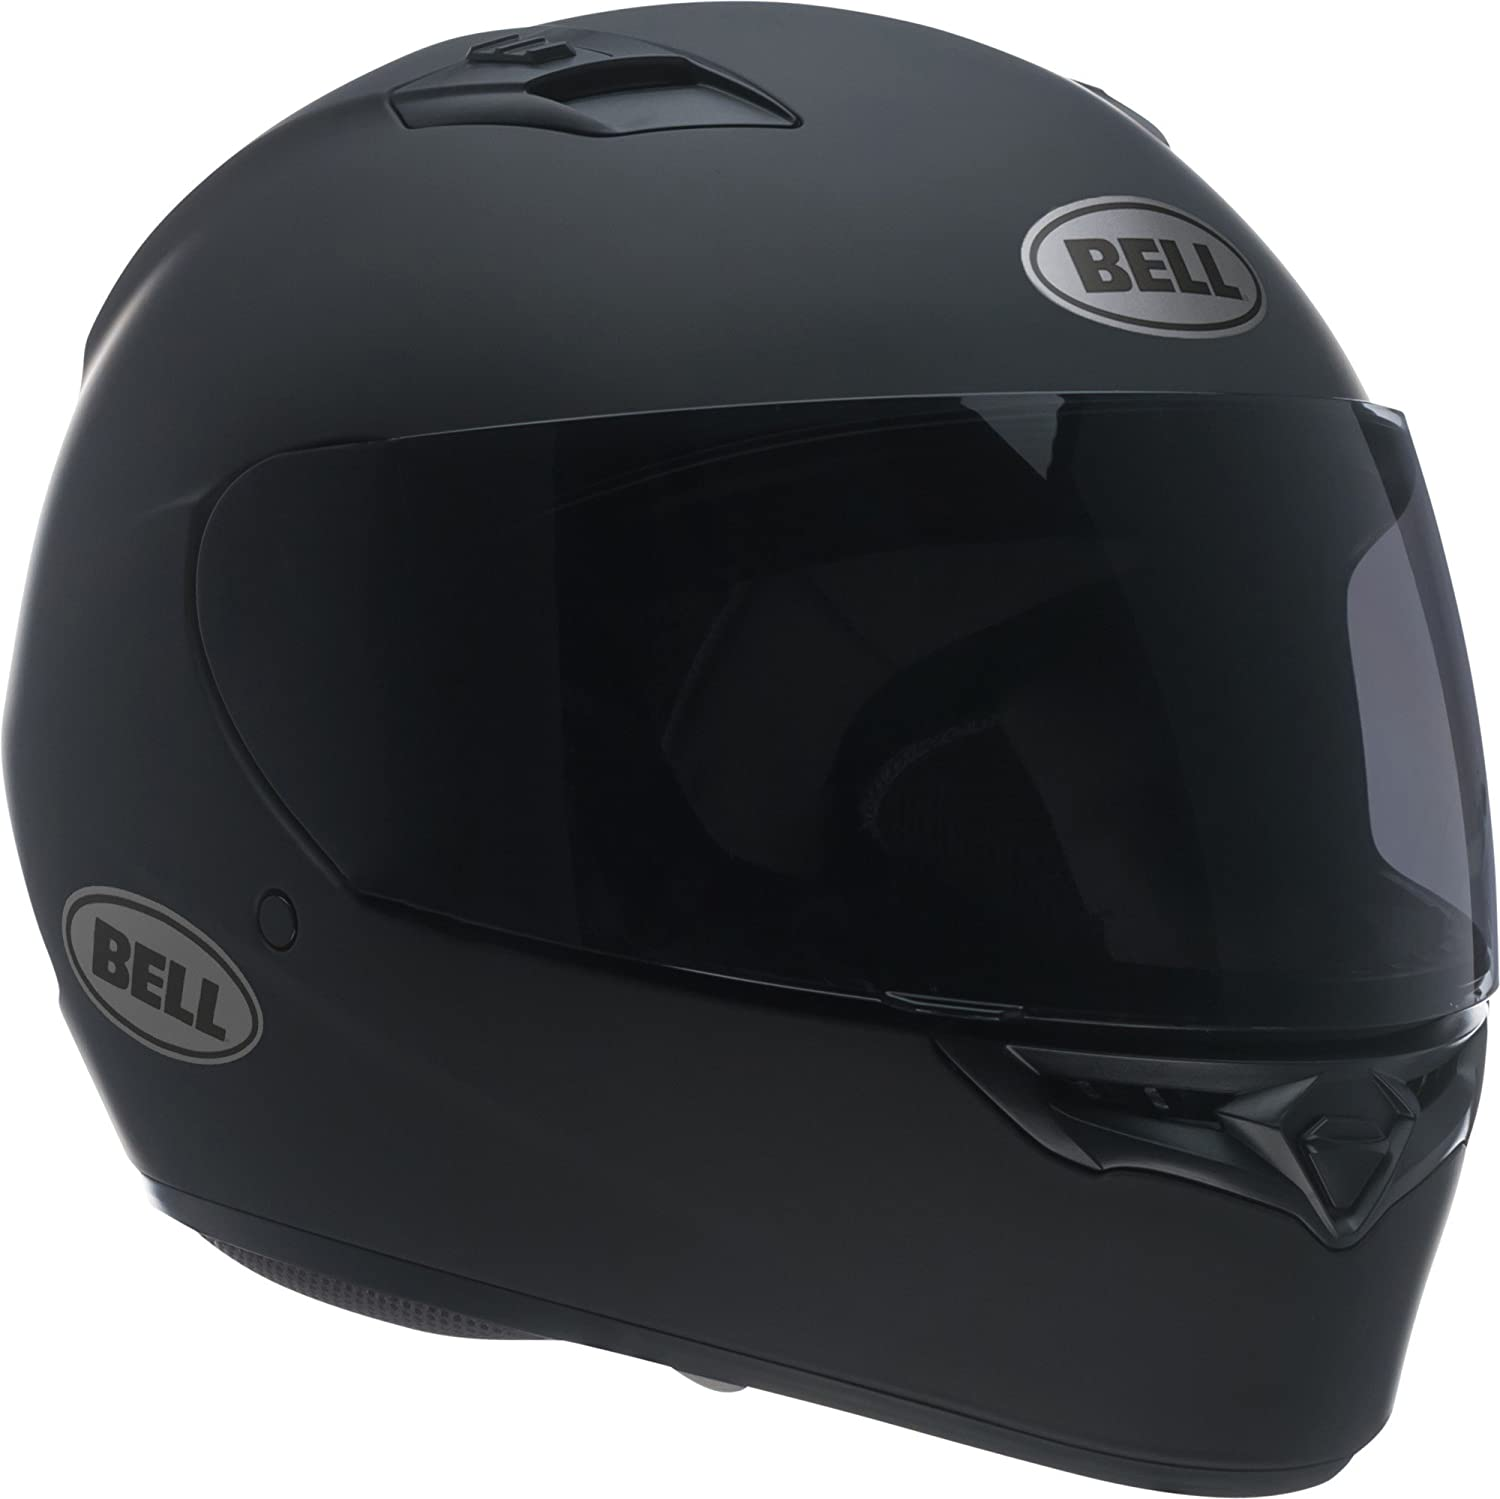 Bell Qualifier Full-Face Motorcycle Helmet